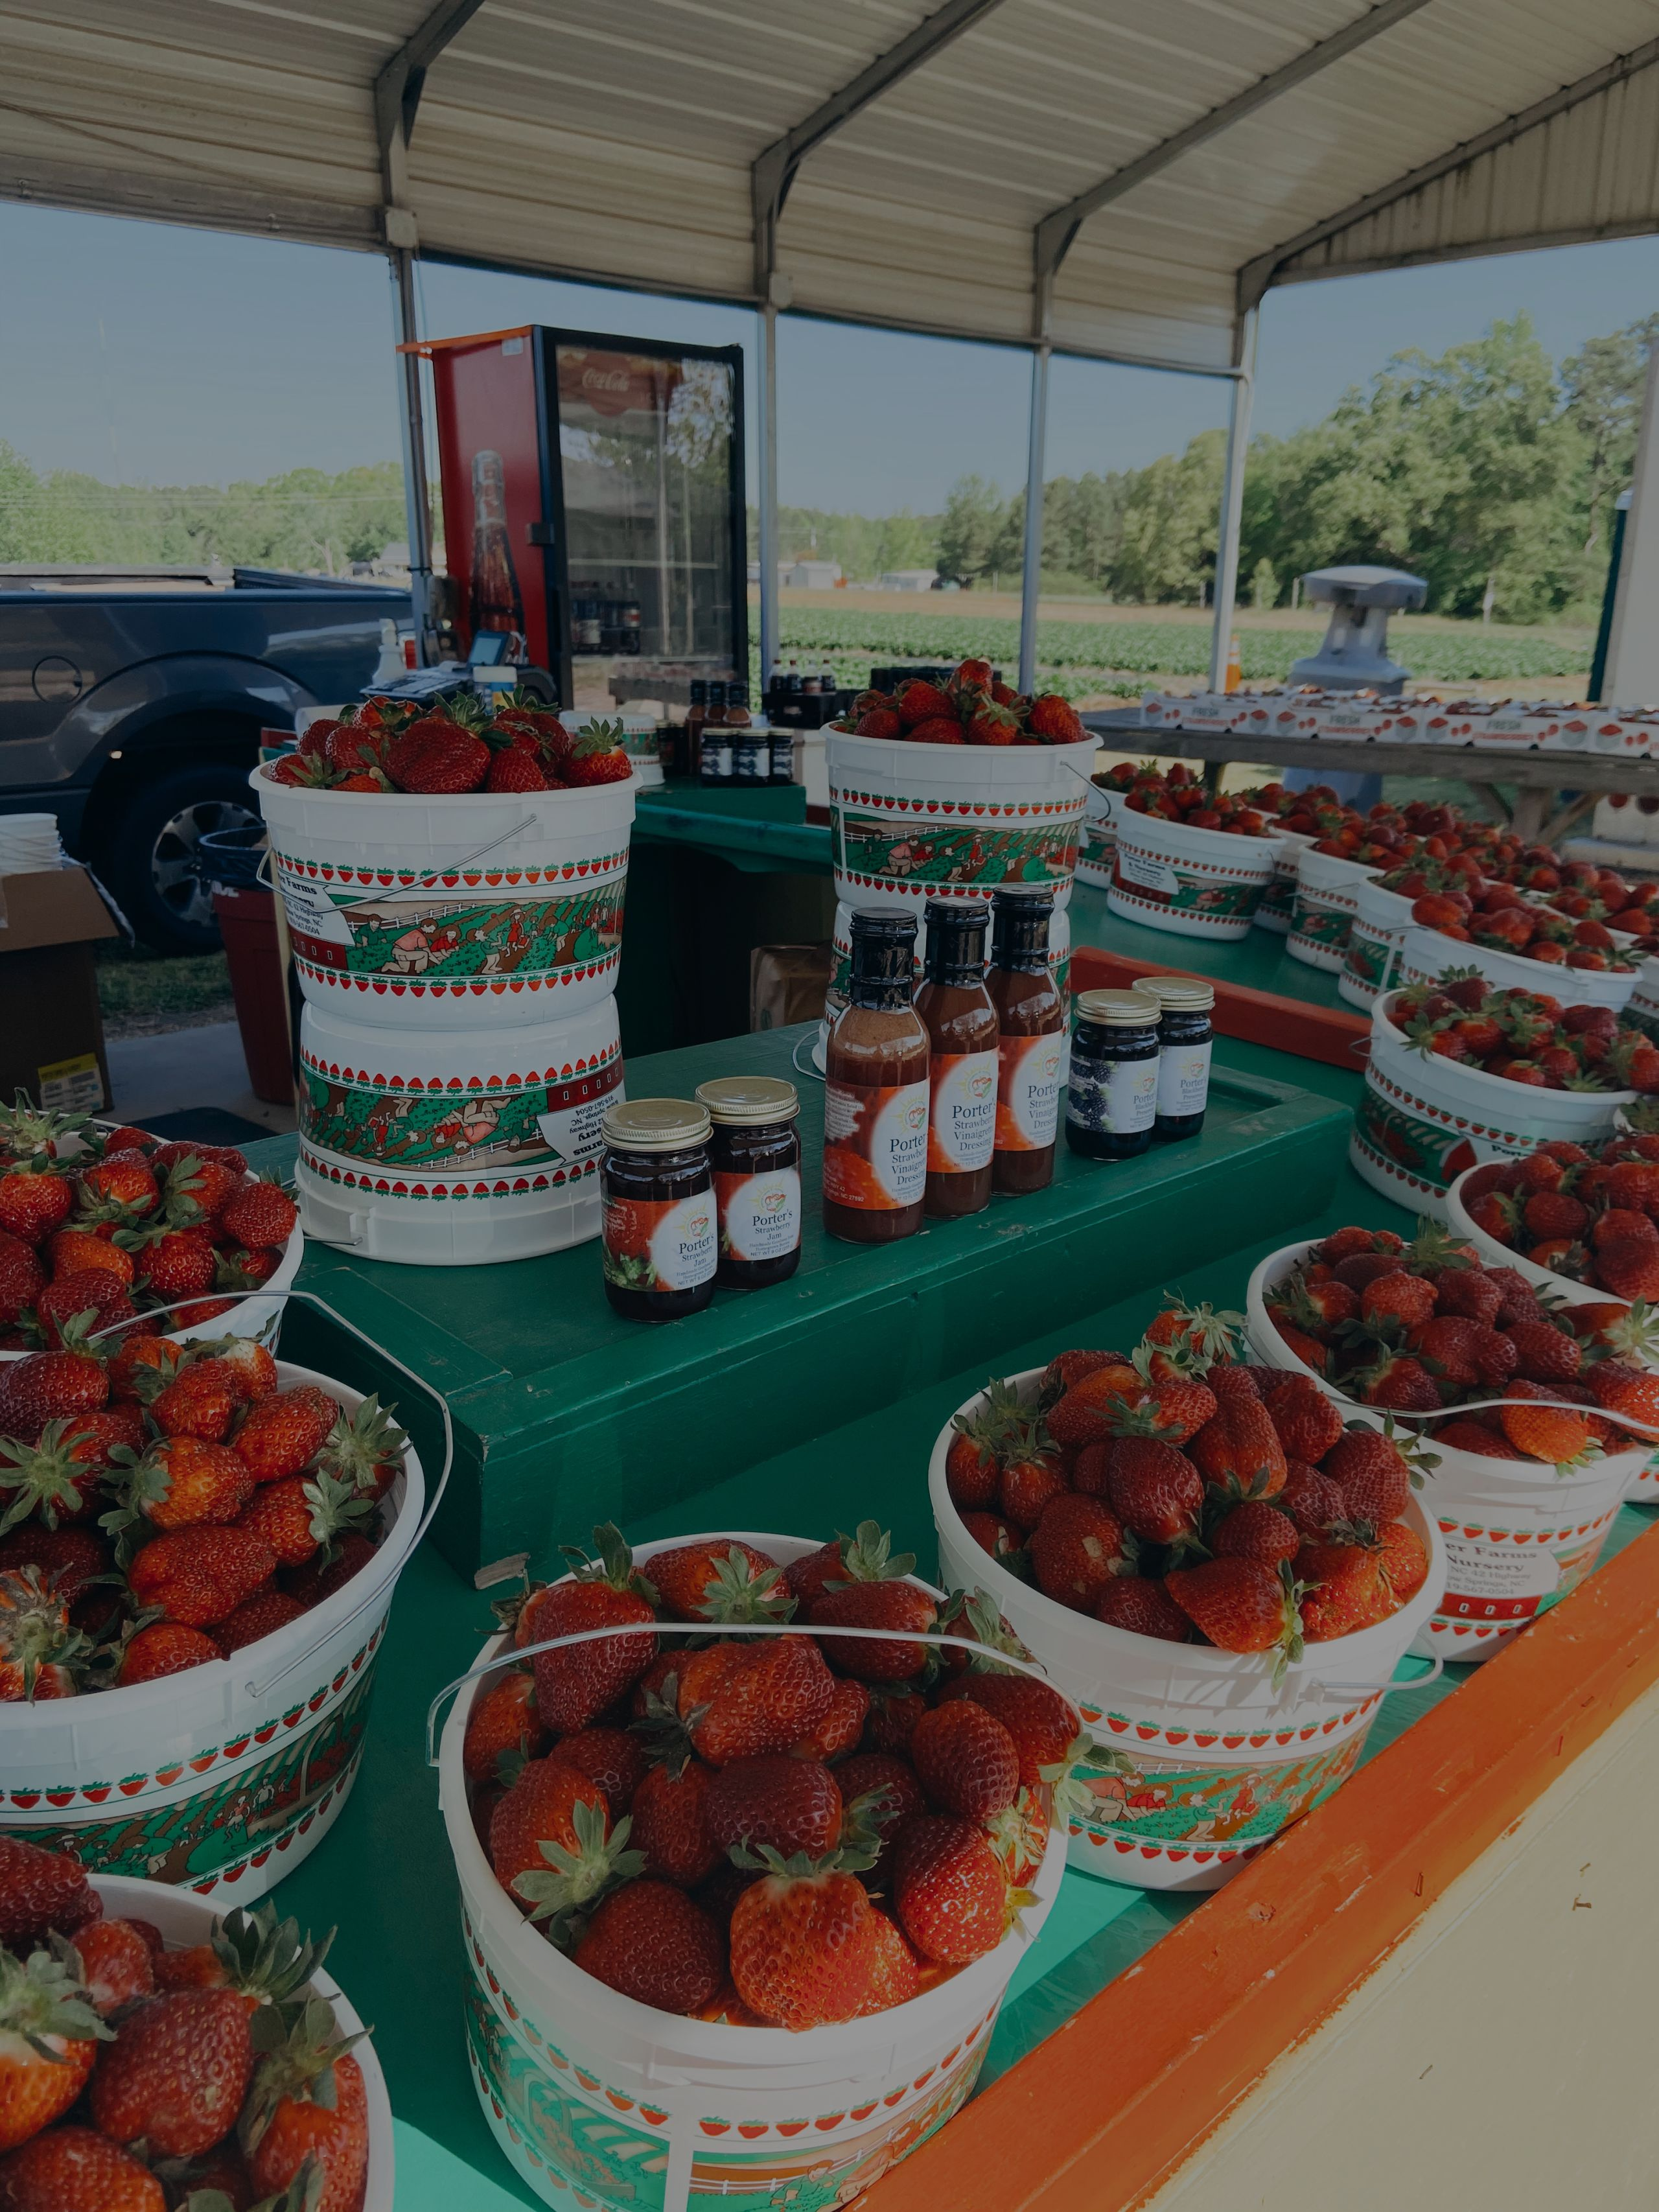 Strawberry Picking at Porter Farms